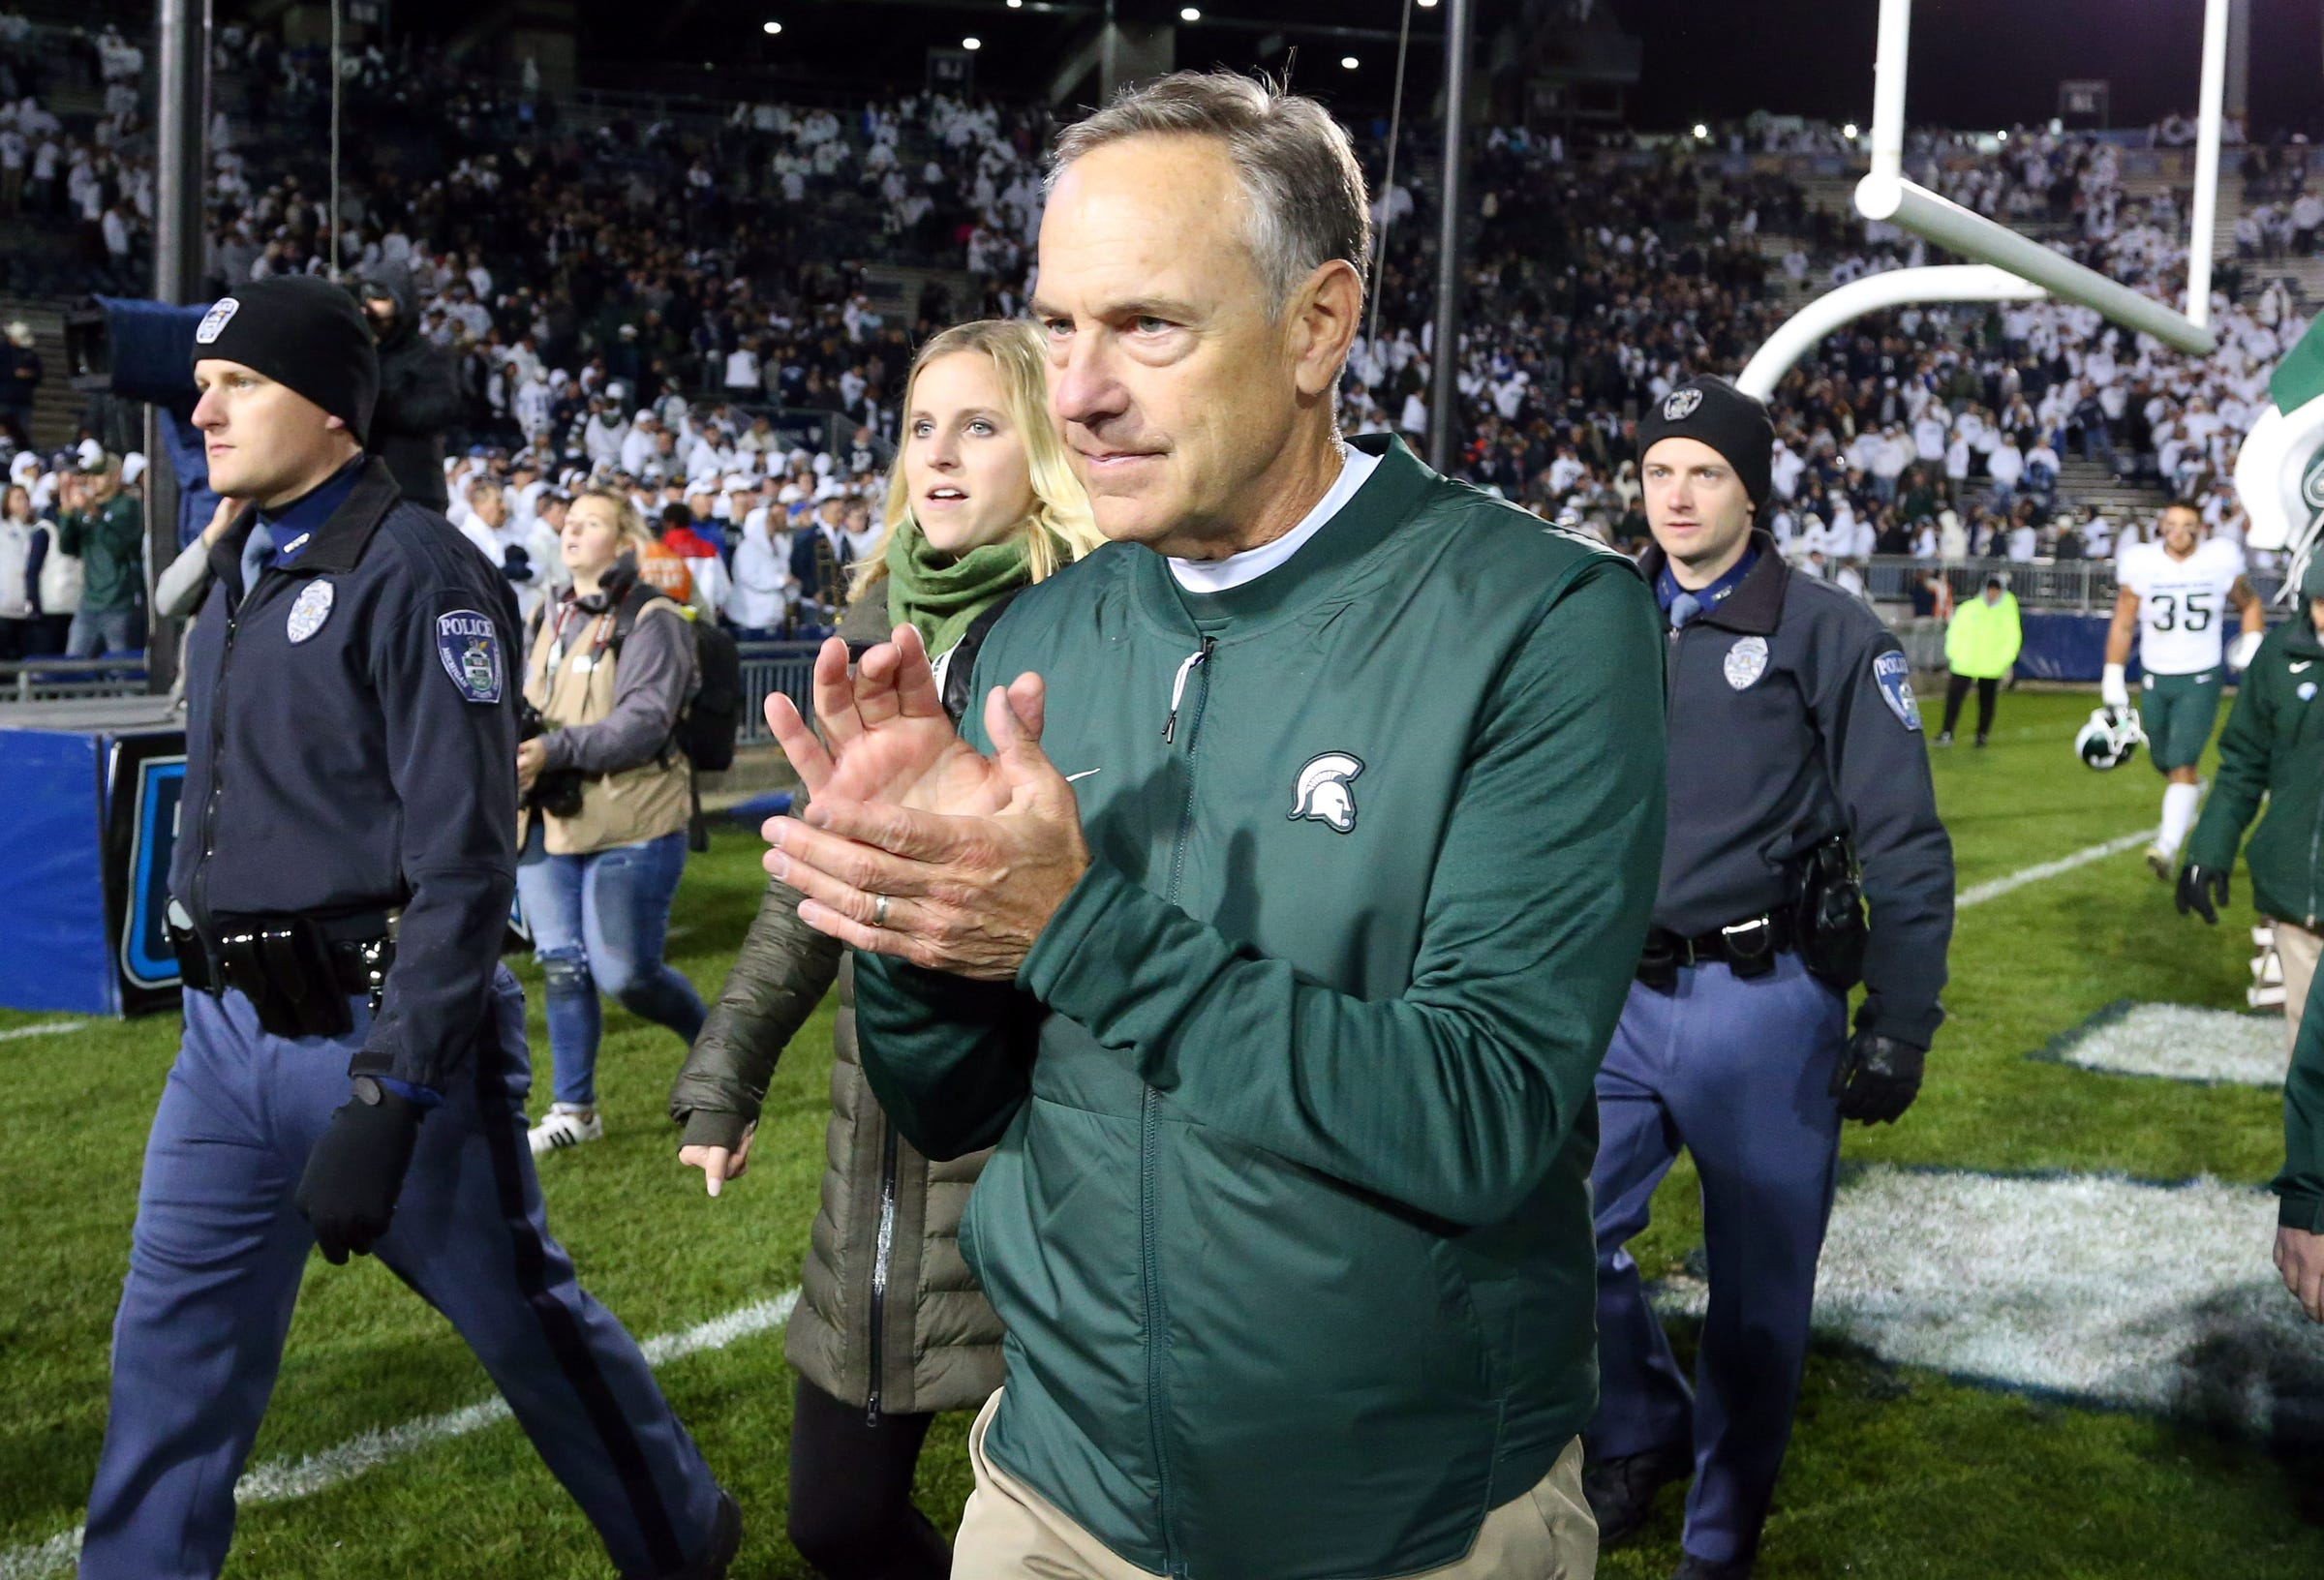 Mark Dantonio walks off the field after MSU's 21-17 win over Penn State on Saturday.